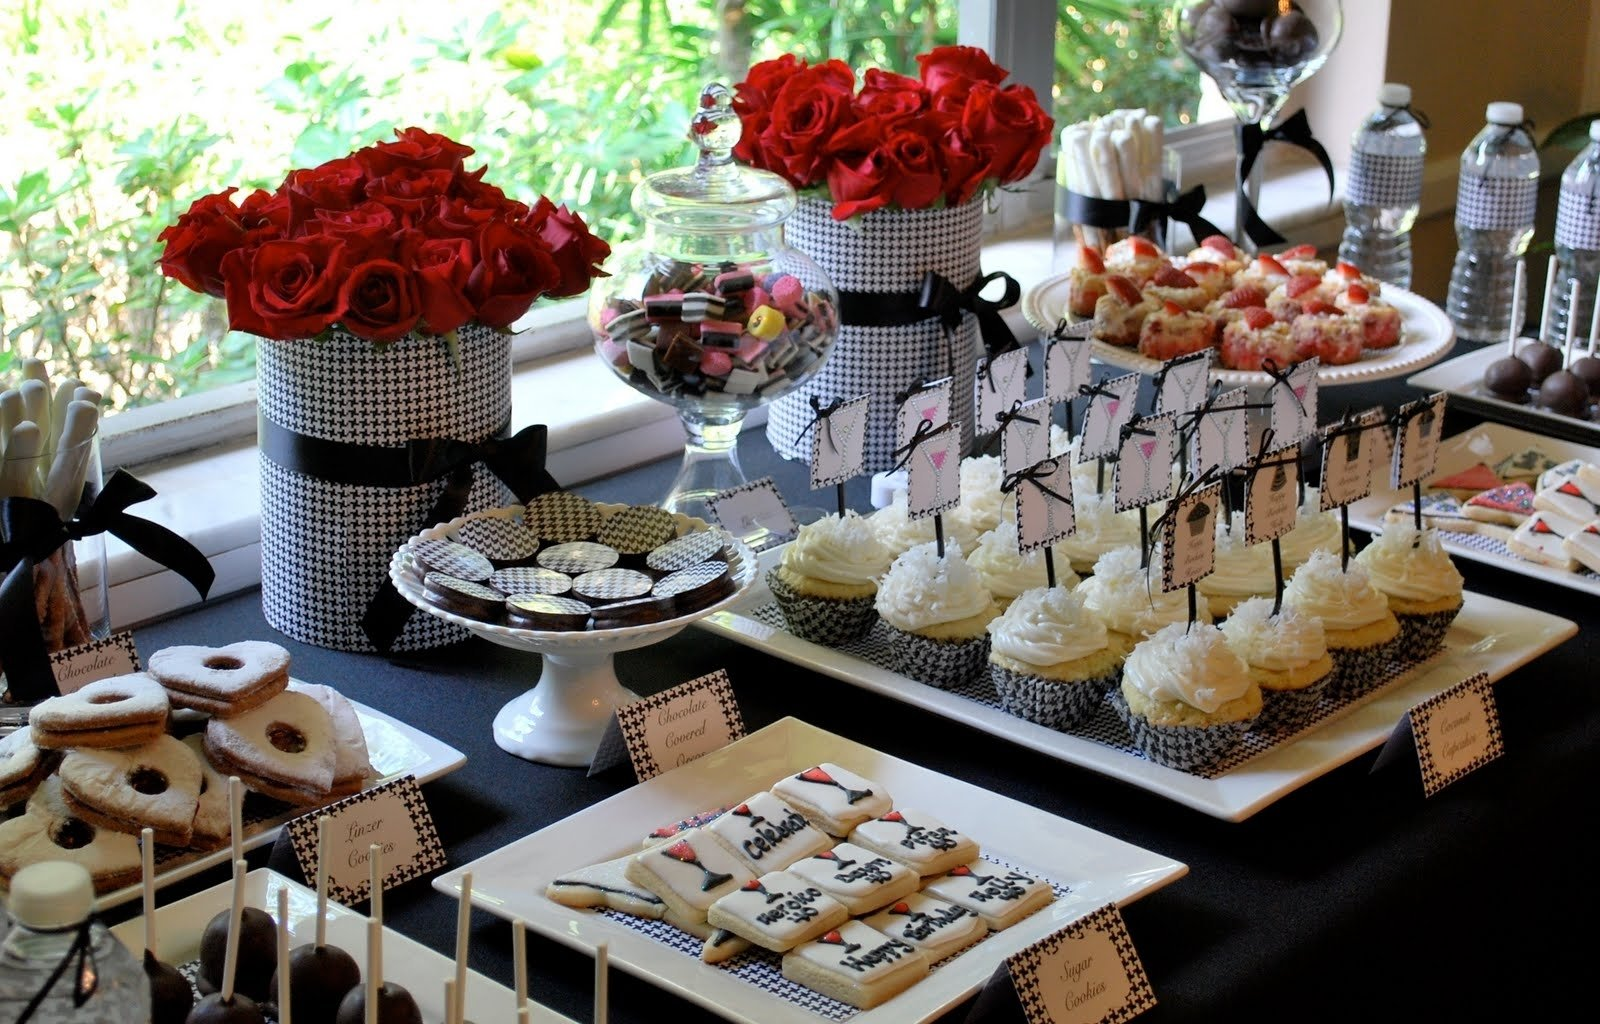 10 Fabulous Party Ideas For Adults At Home birthday party decorating ideas adults room dma homes 31054